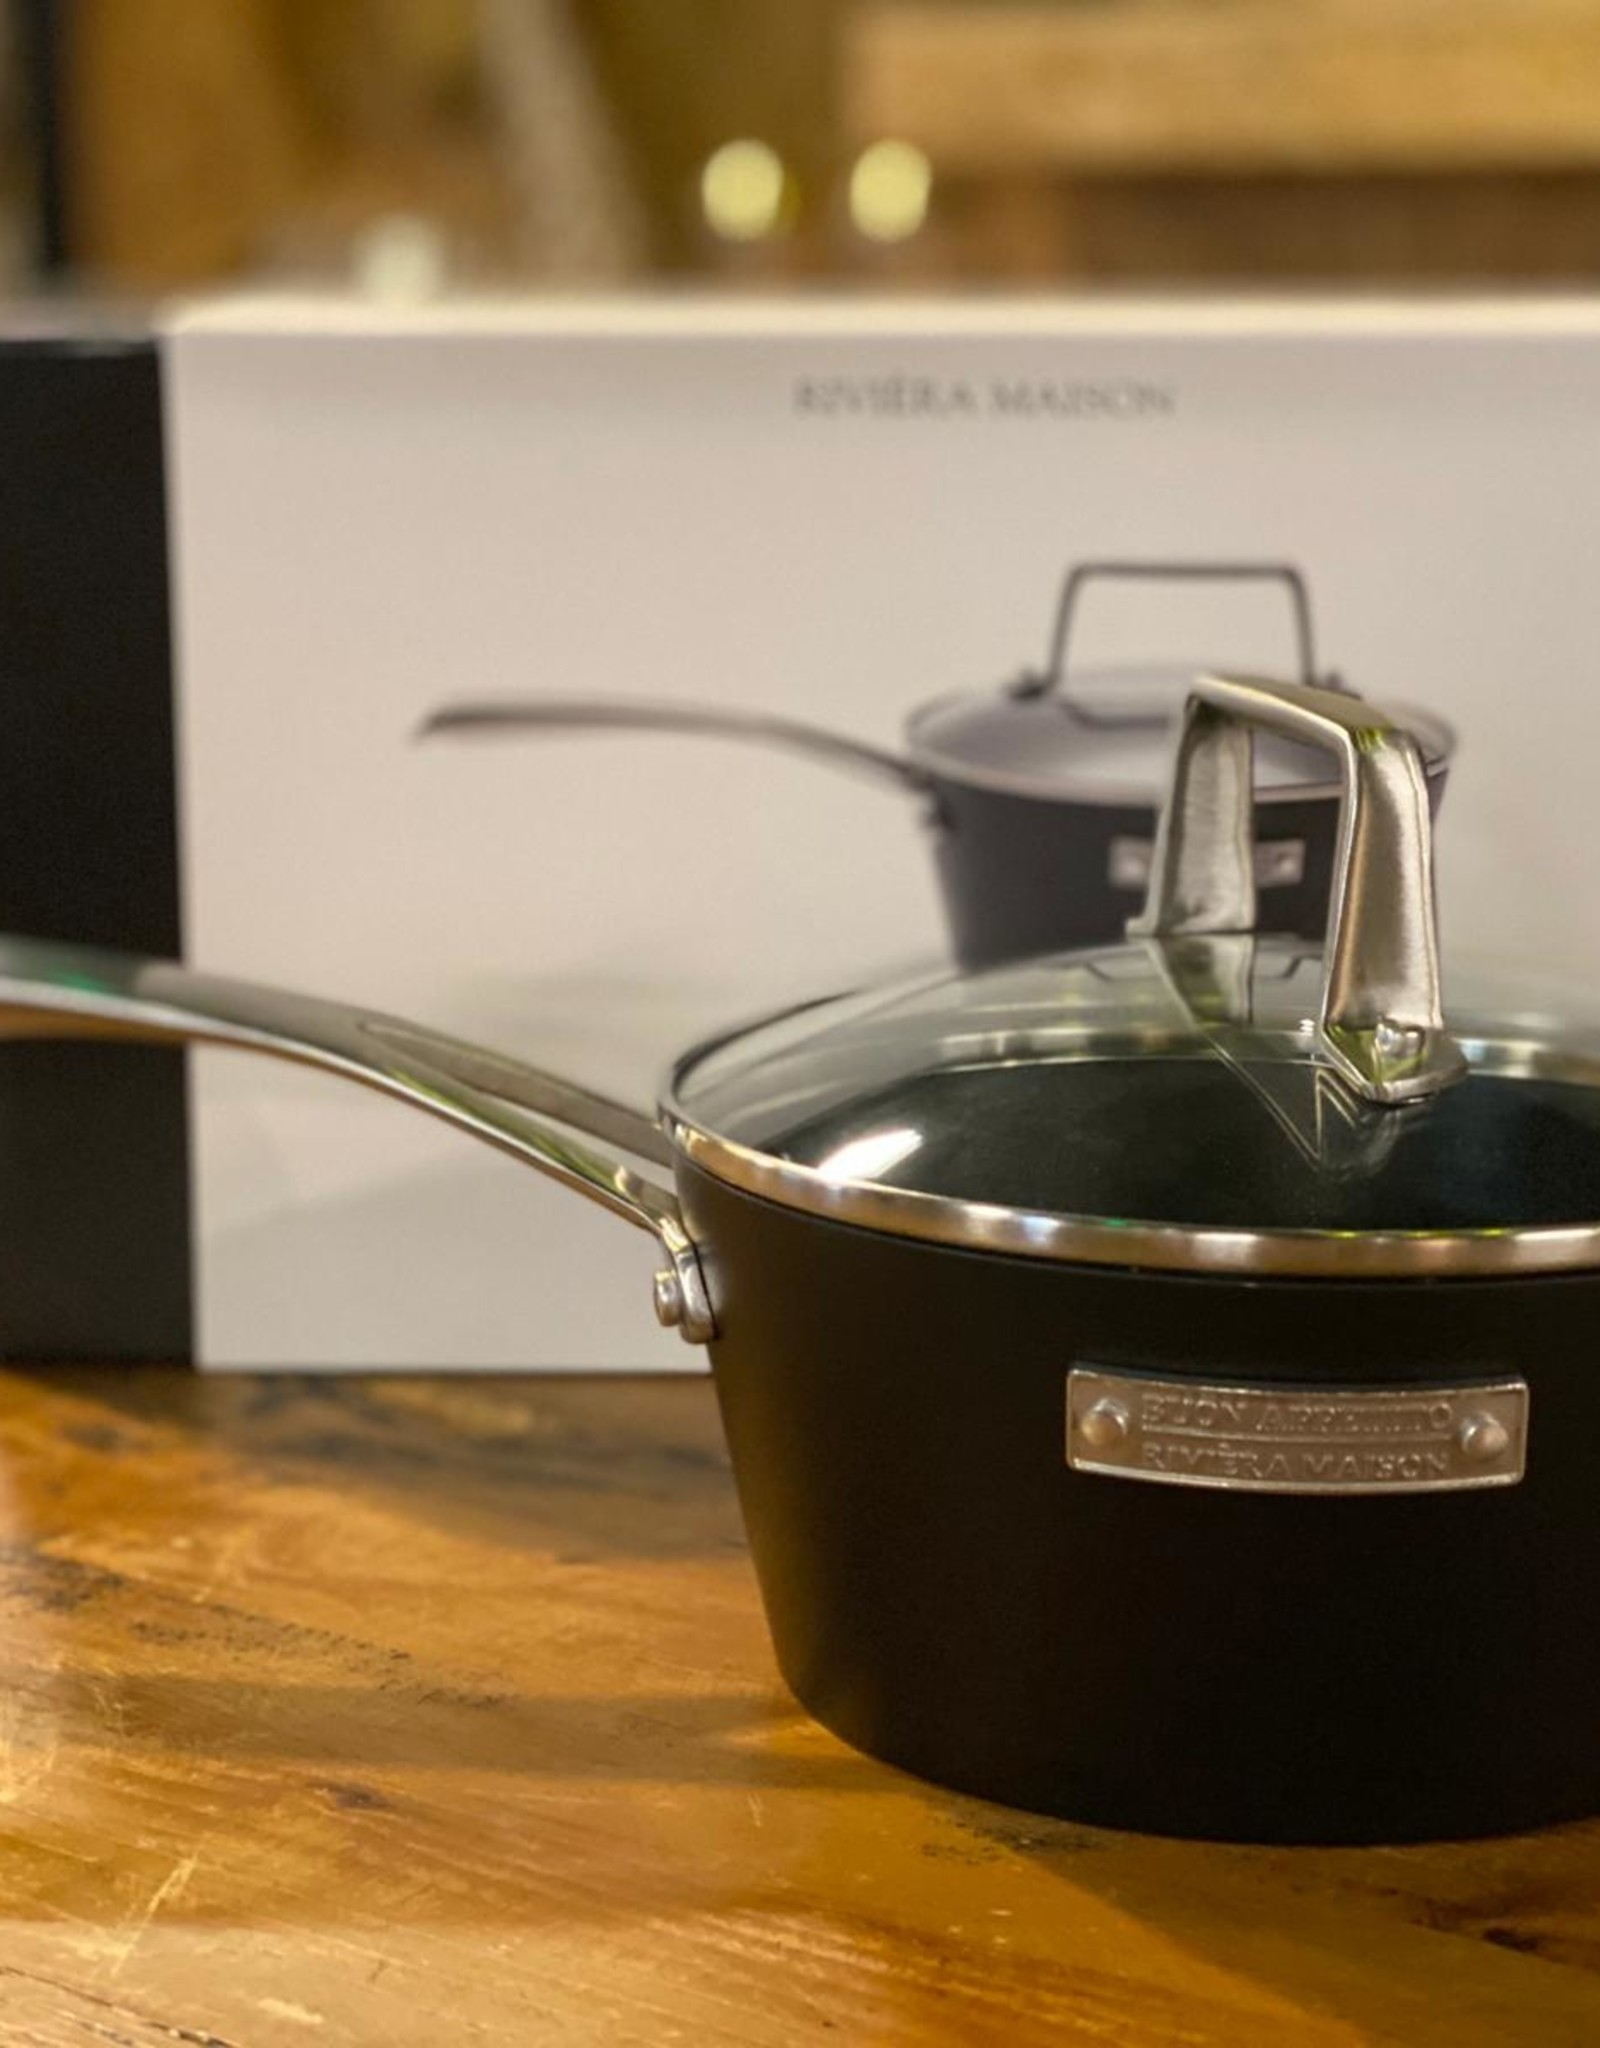 Riviera Maison Buon Appetito Sauce Pan With Lid